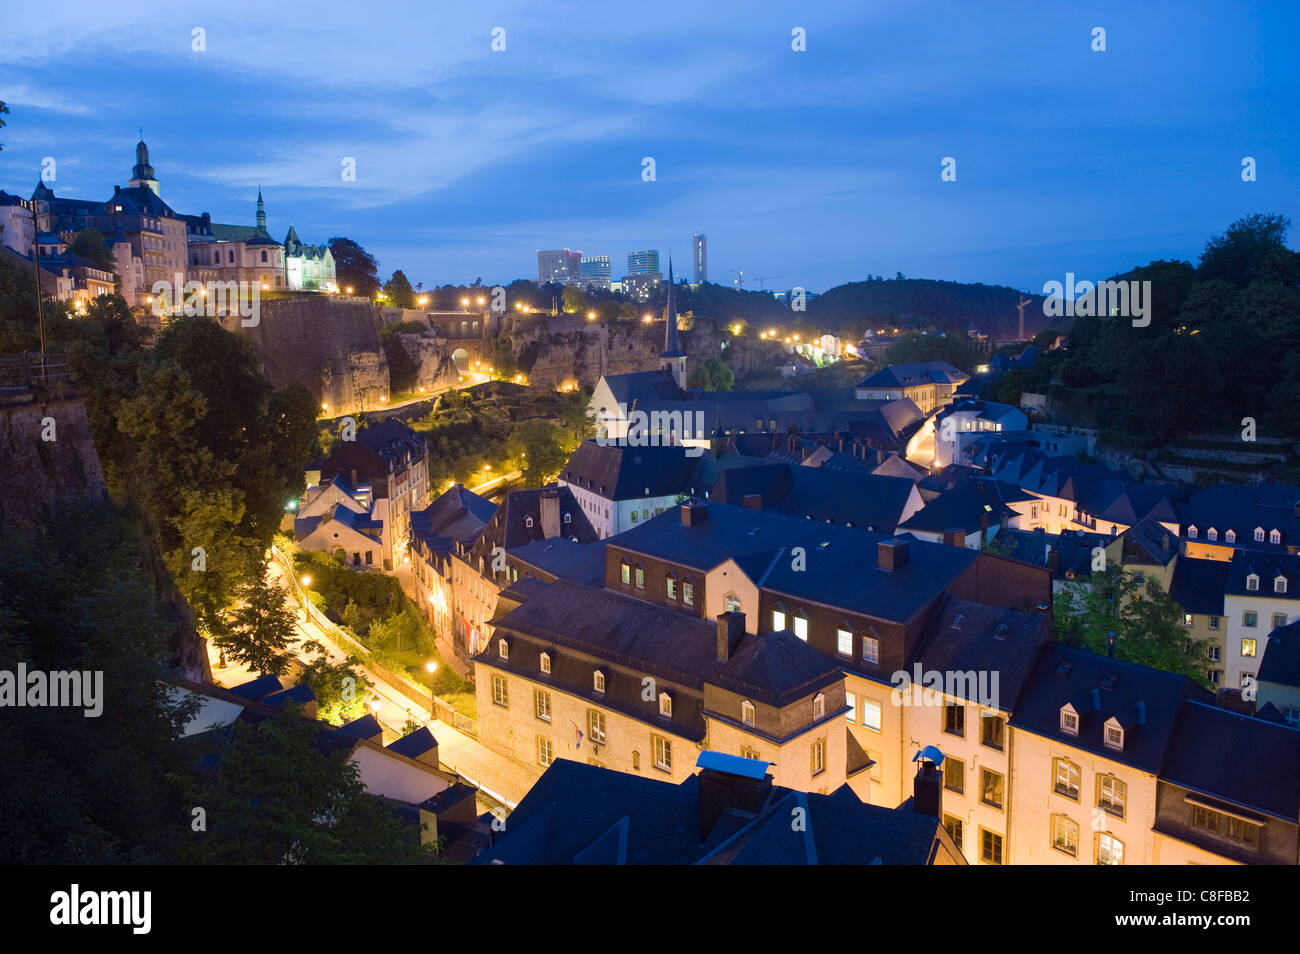 Old Town, UNESCO World Heritage Site, Luxembourg City, Grand Duchy of Luxembourg - Stock Image